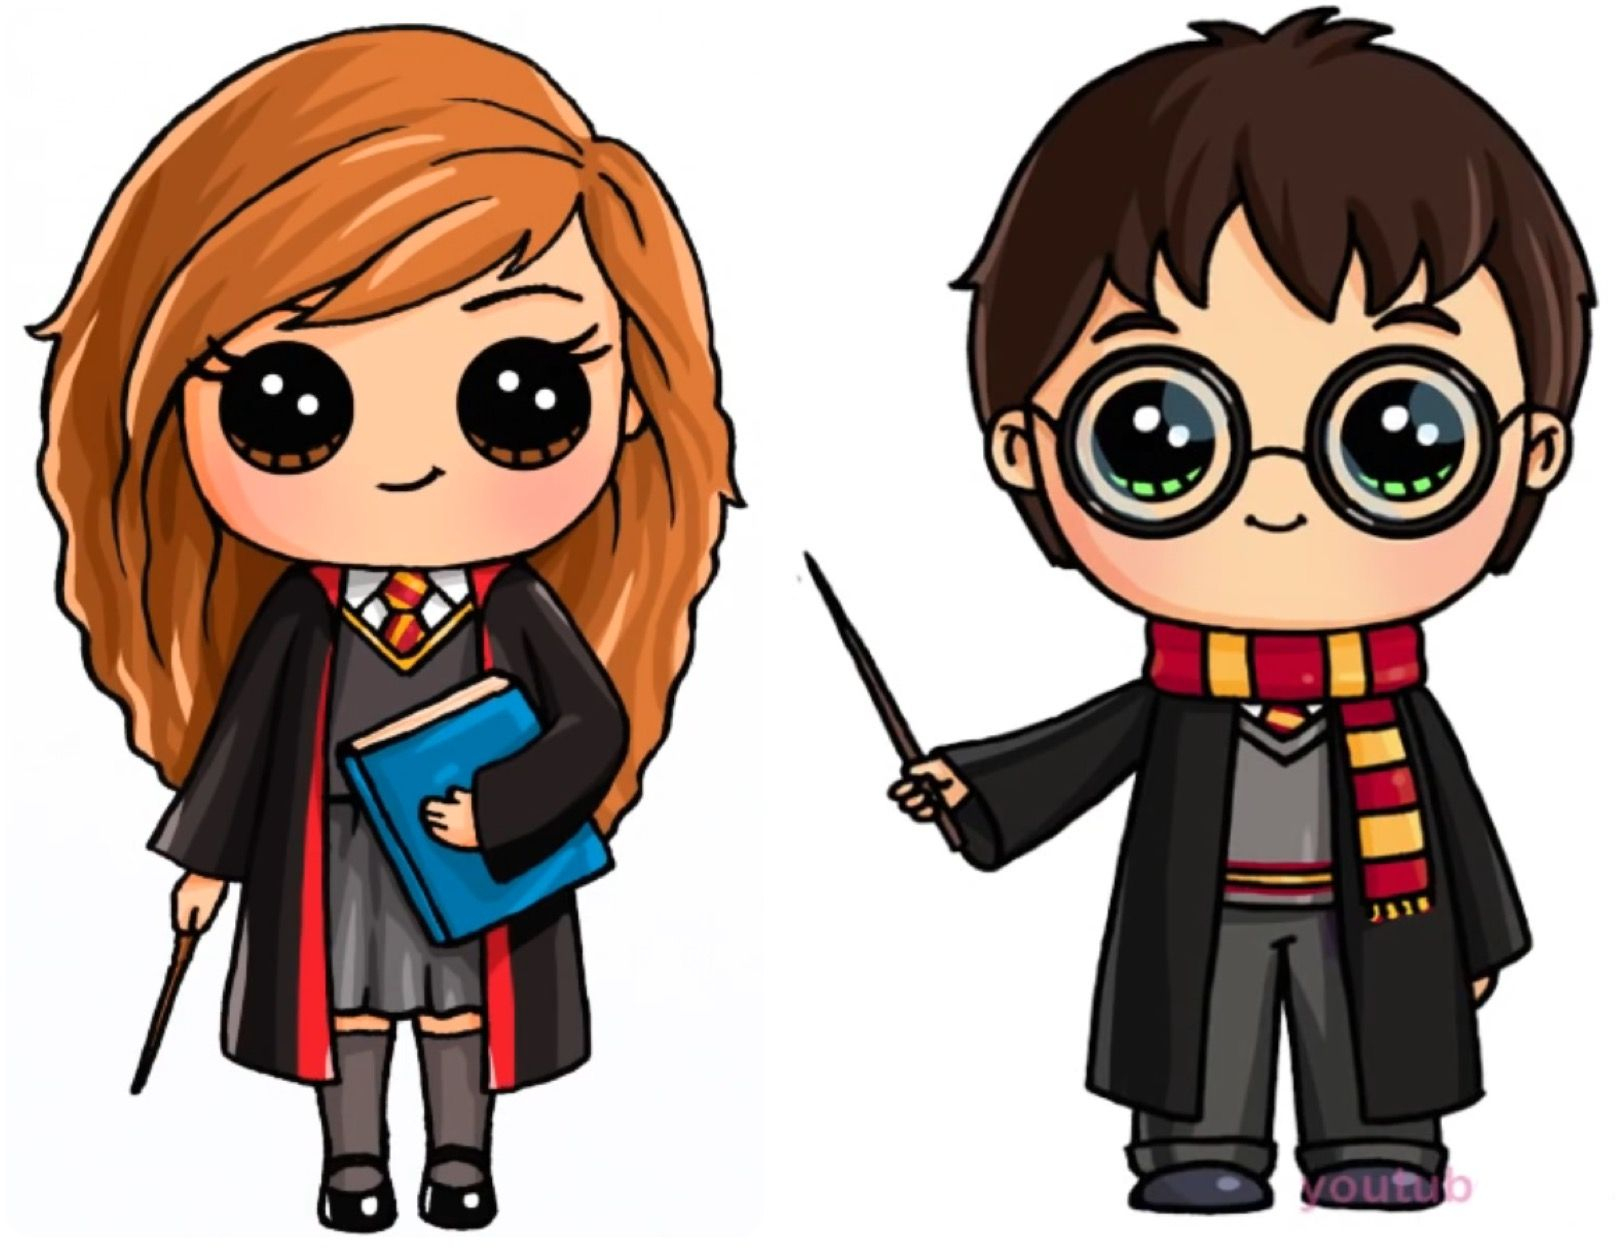 Related Image | Cute Harry Potter, Harry Potter Drawings tout Dessin D Harry Potter